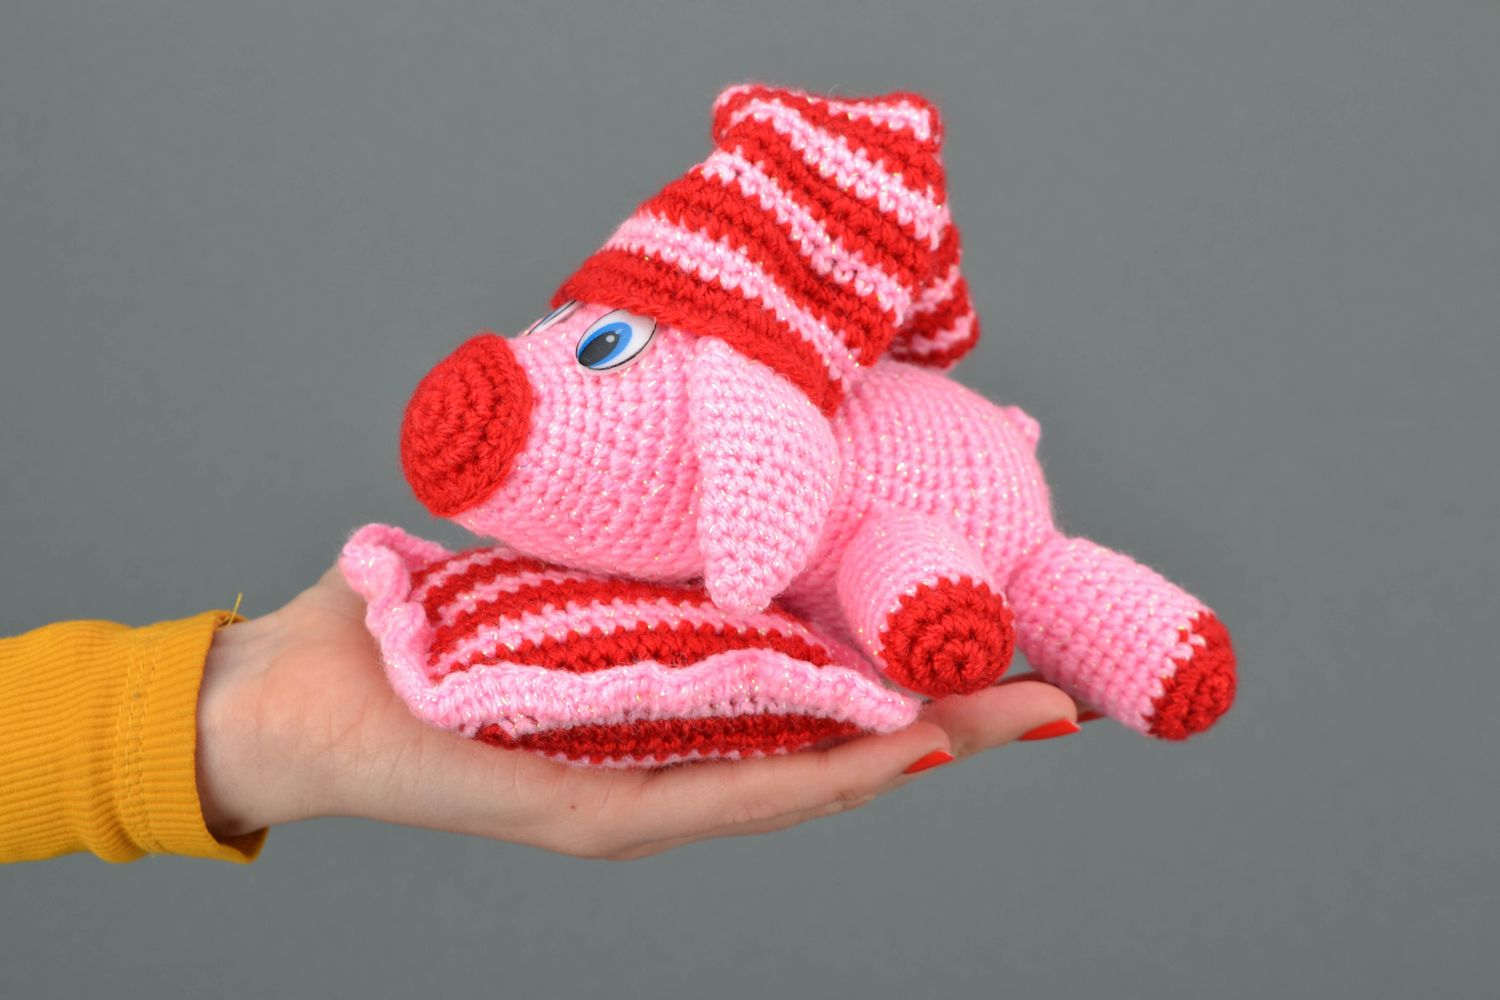 Soft crochet toy Pink Pig on Pillow photo 2